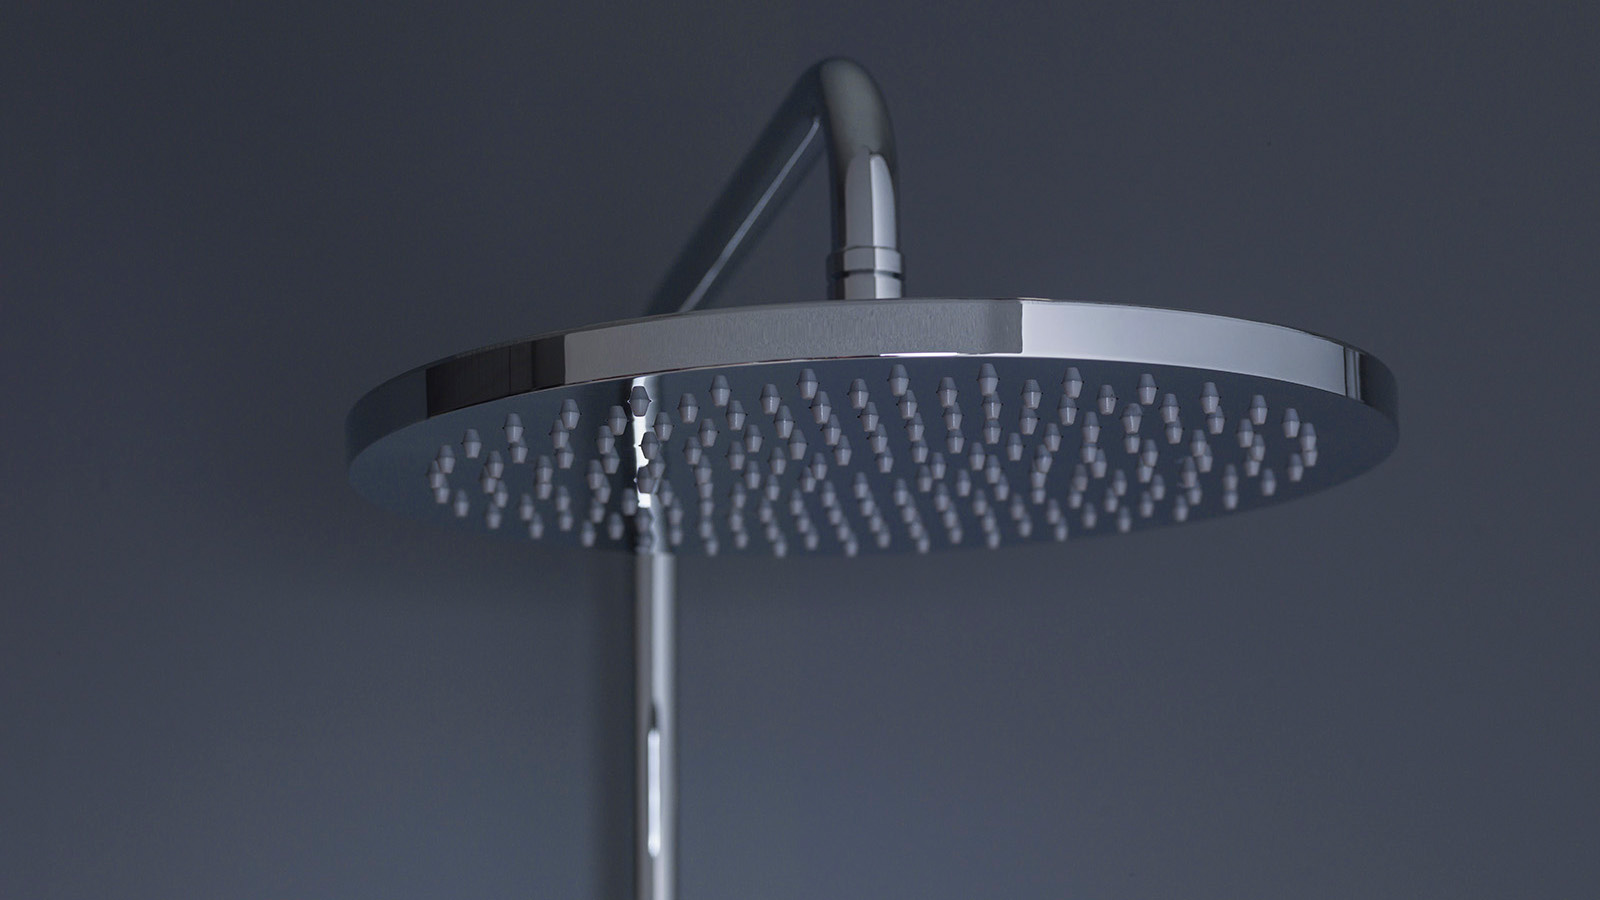 The new Systempool columns revolutionize the daily shower